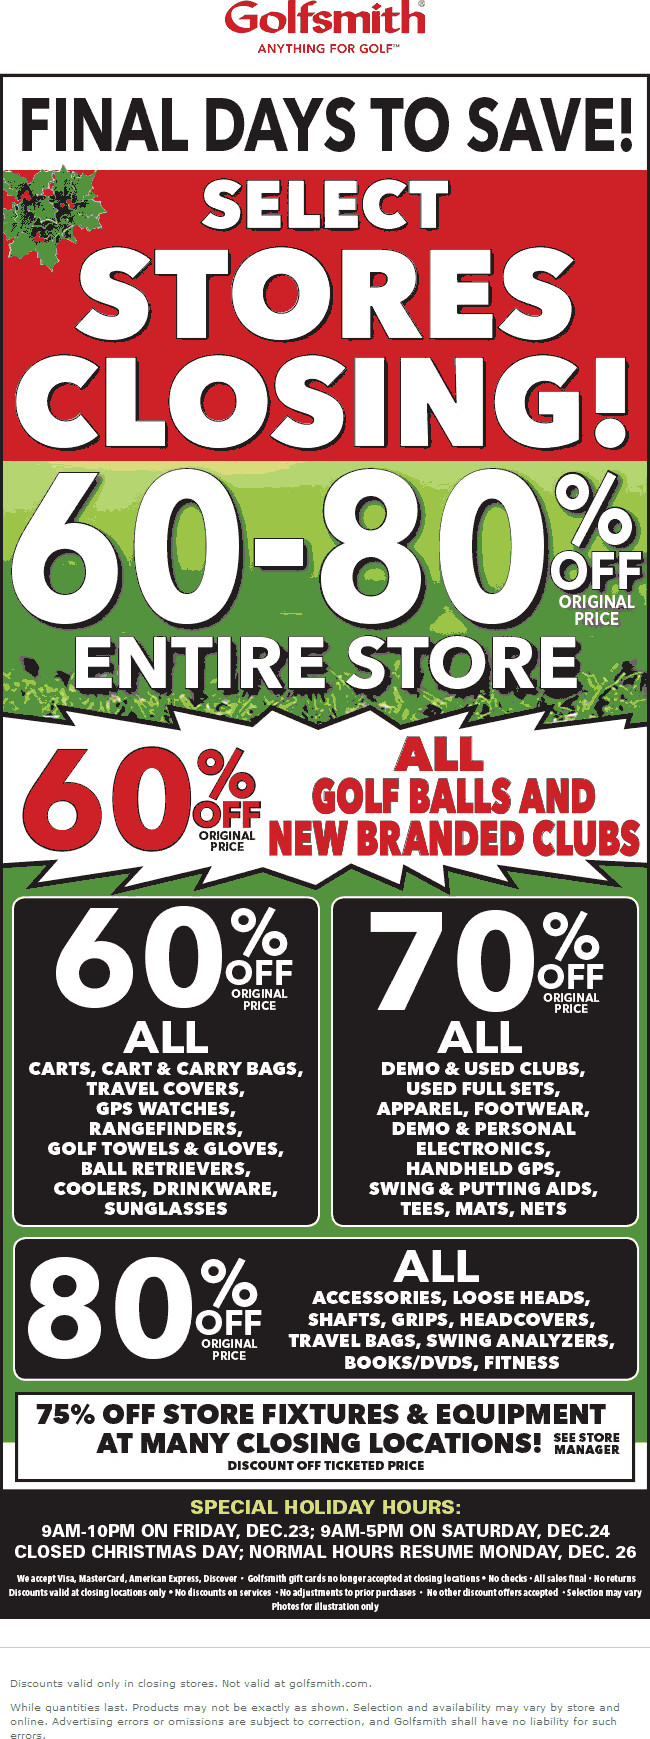 Golfsmith.com Promo Coupon 60-80% off store closing sale going on at Golfsmith